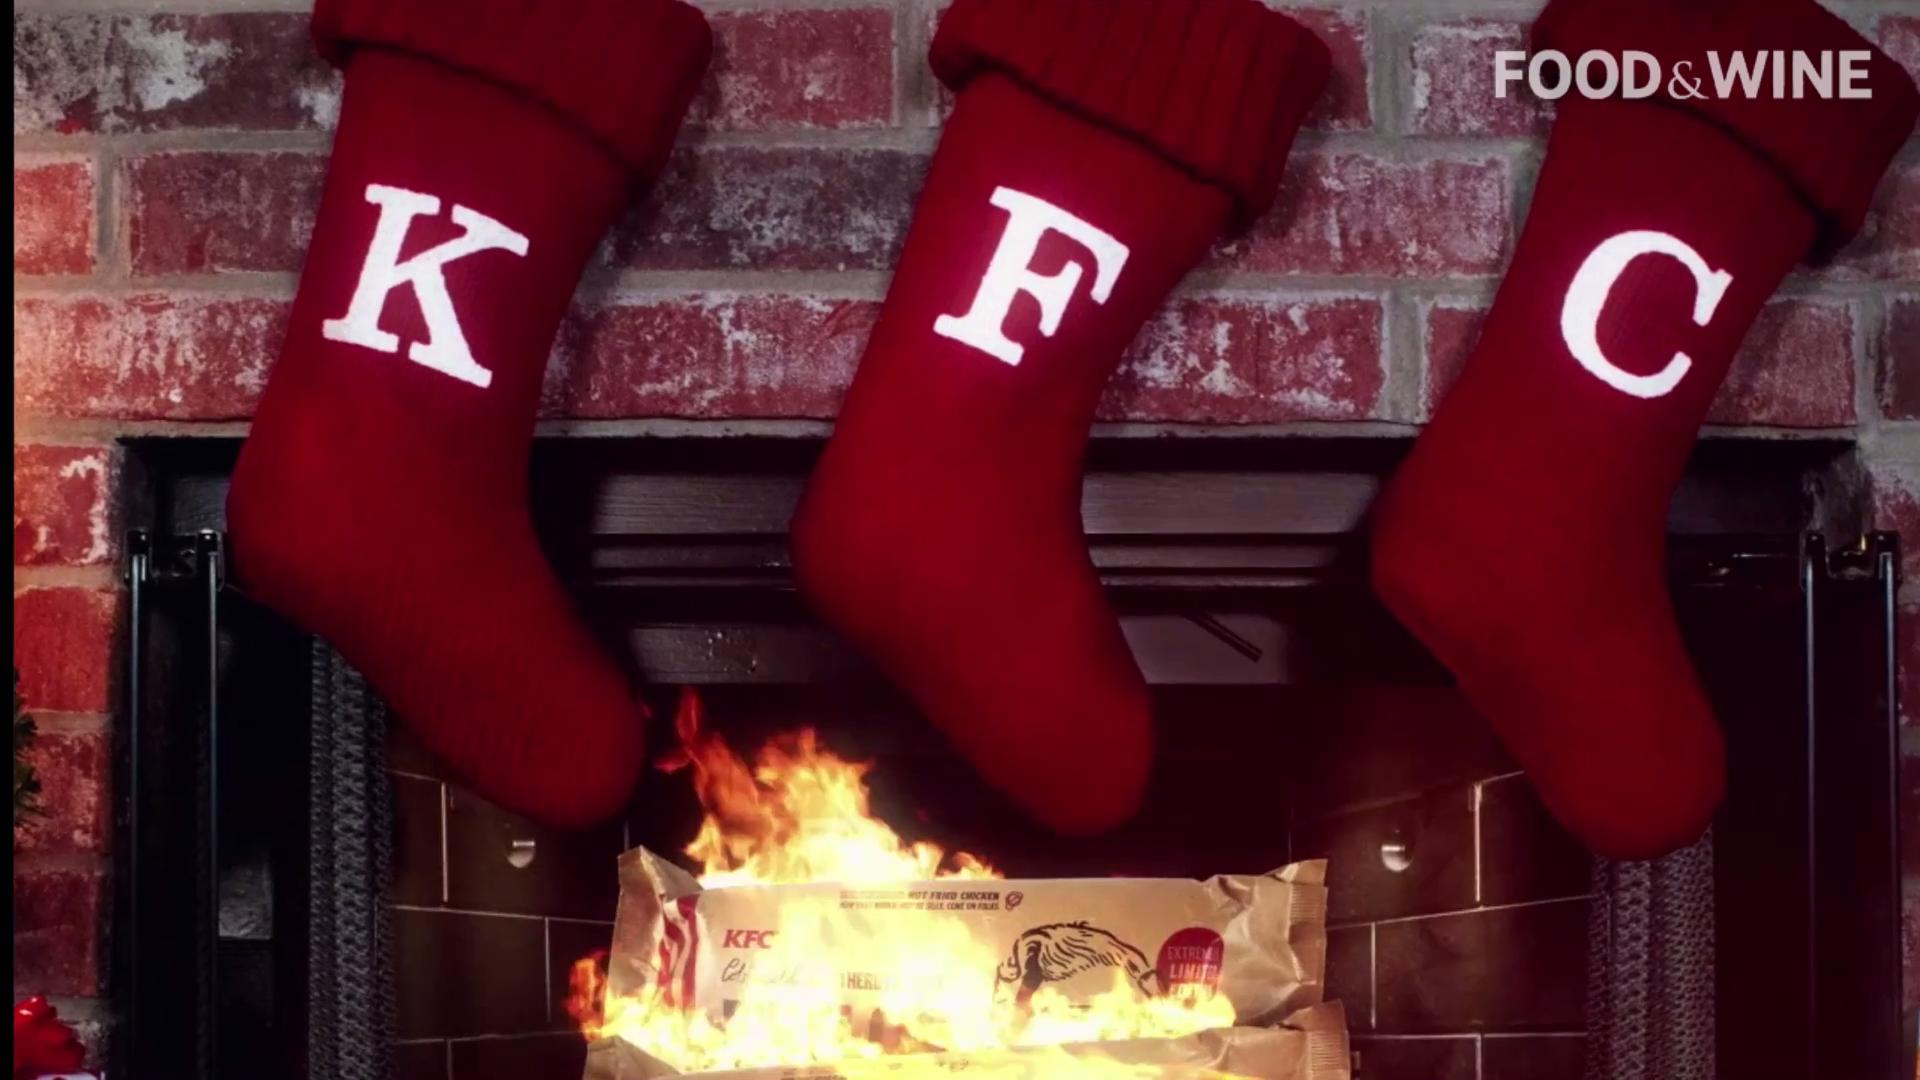 Weird, Odd and Bizarre News - KFC Is Selling Fried Chicken Firelogs Because Of Course They Are